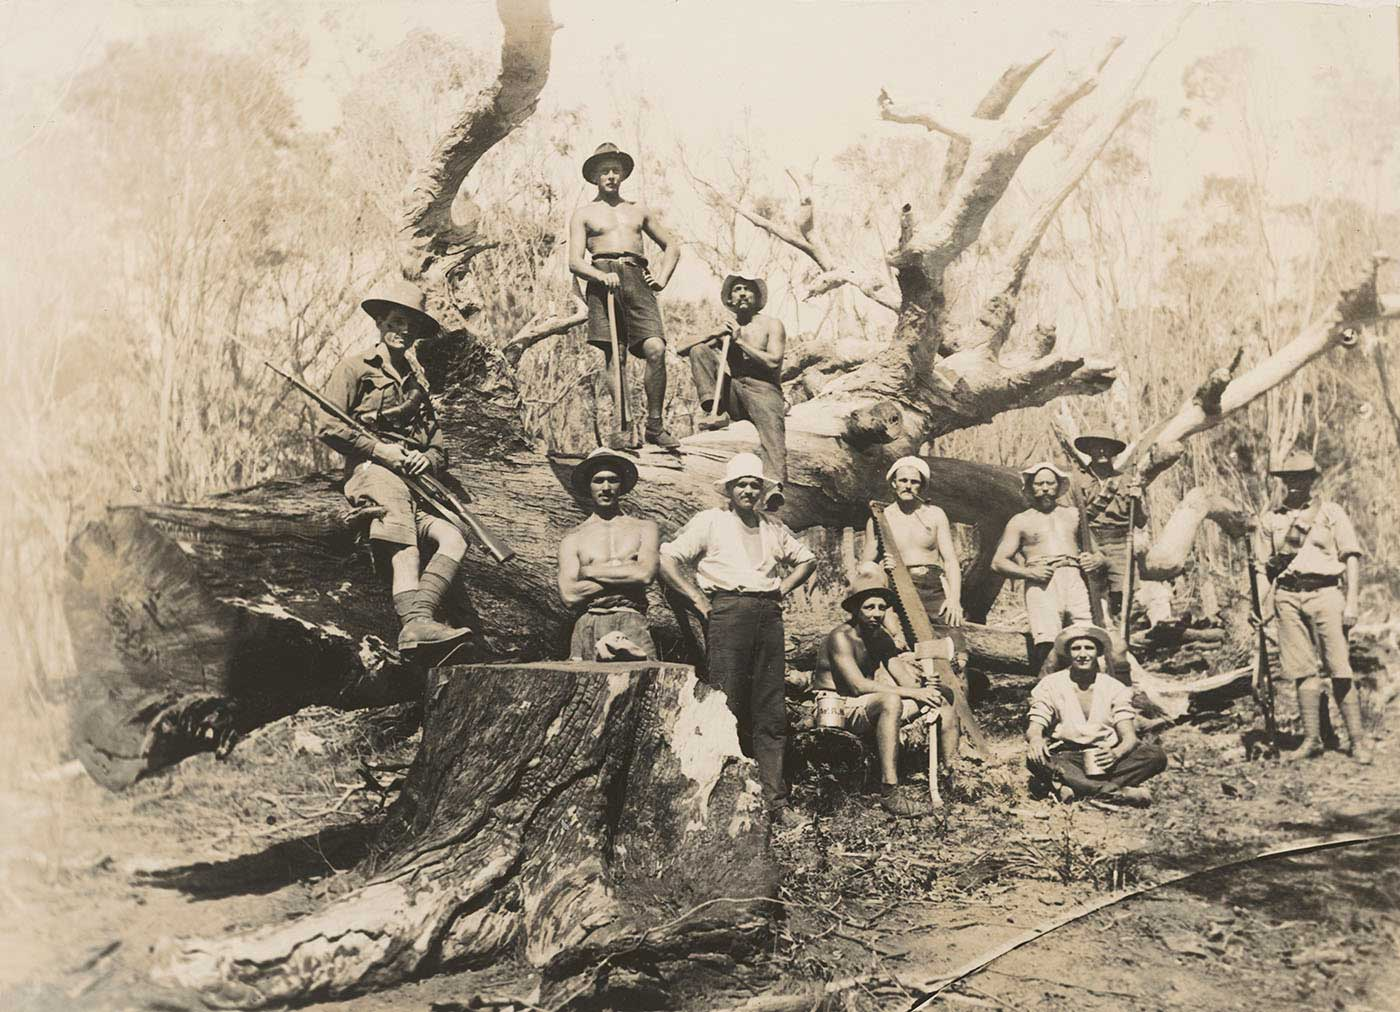 Black and white photo of men with axes, some shirtless posing on and in front of a large fallen tree.